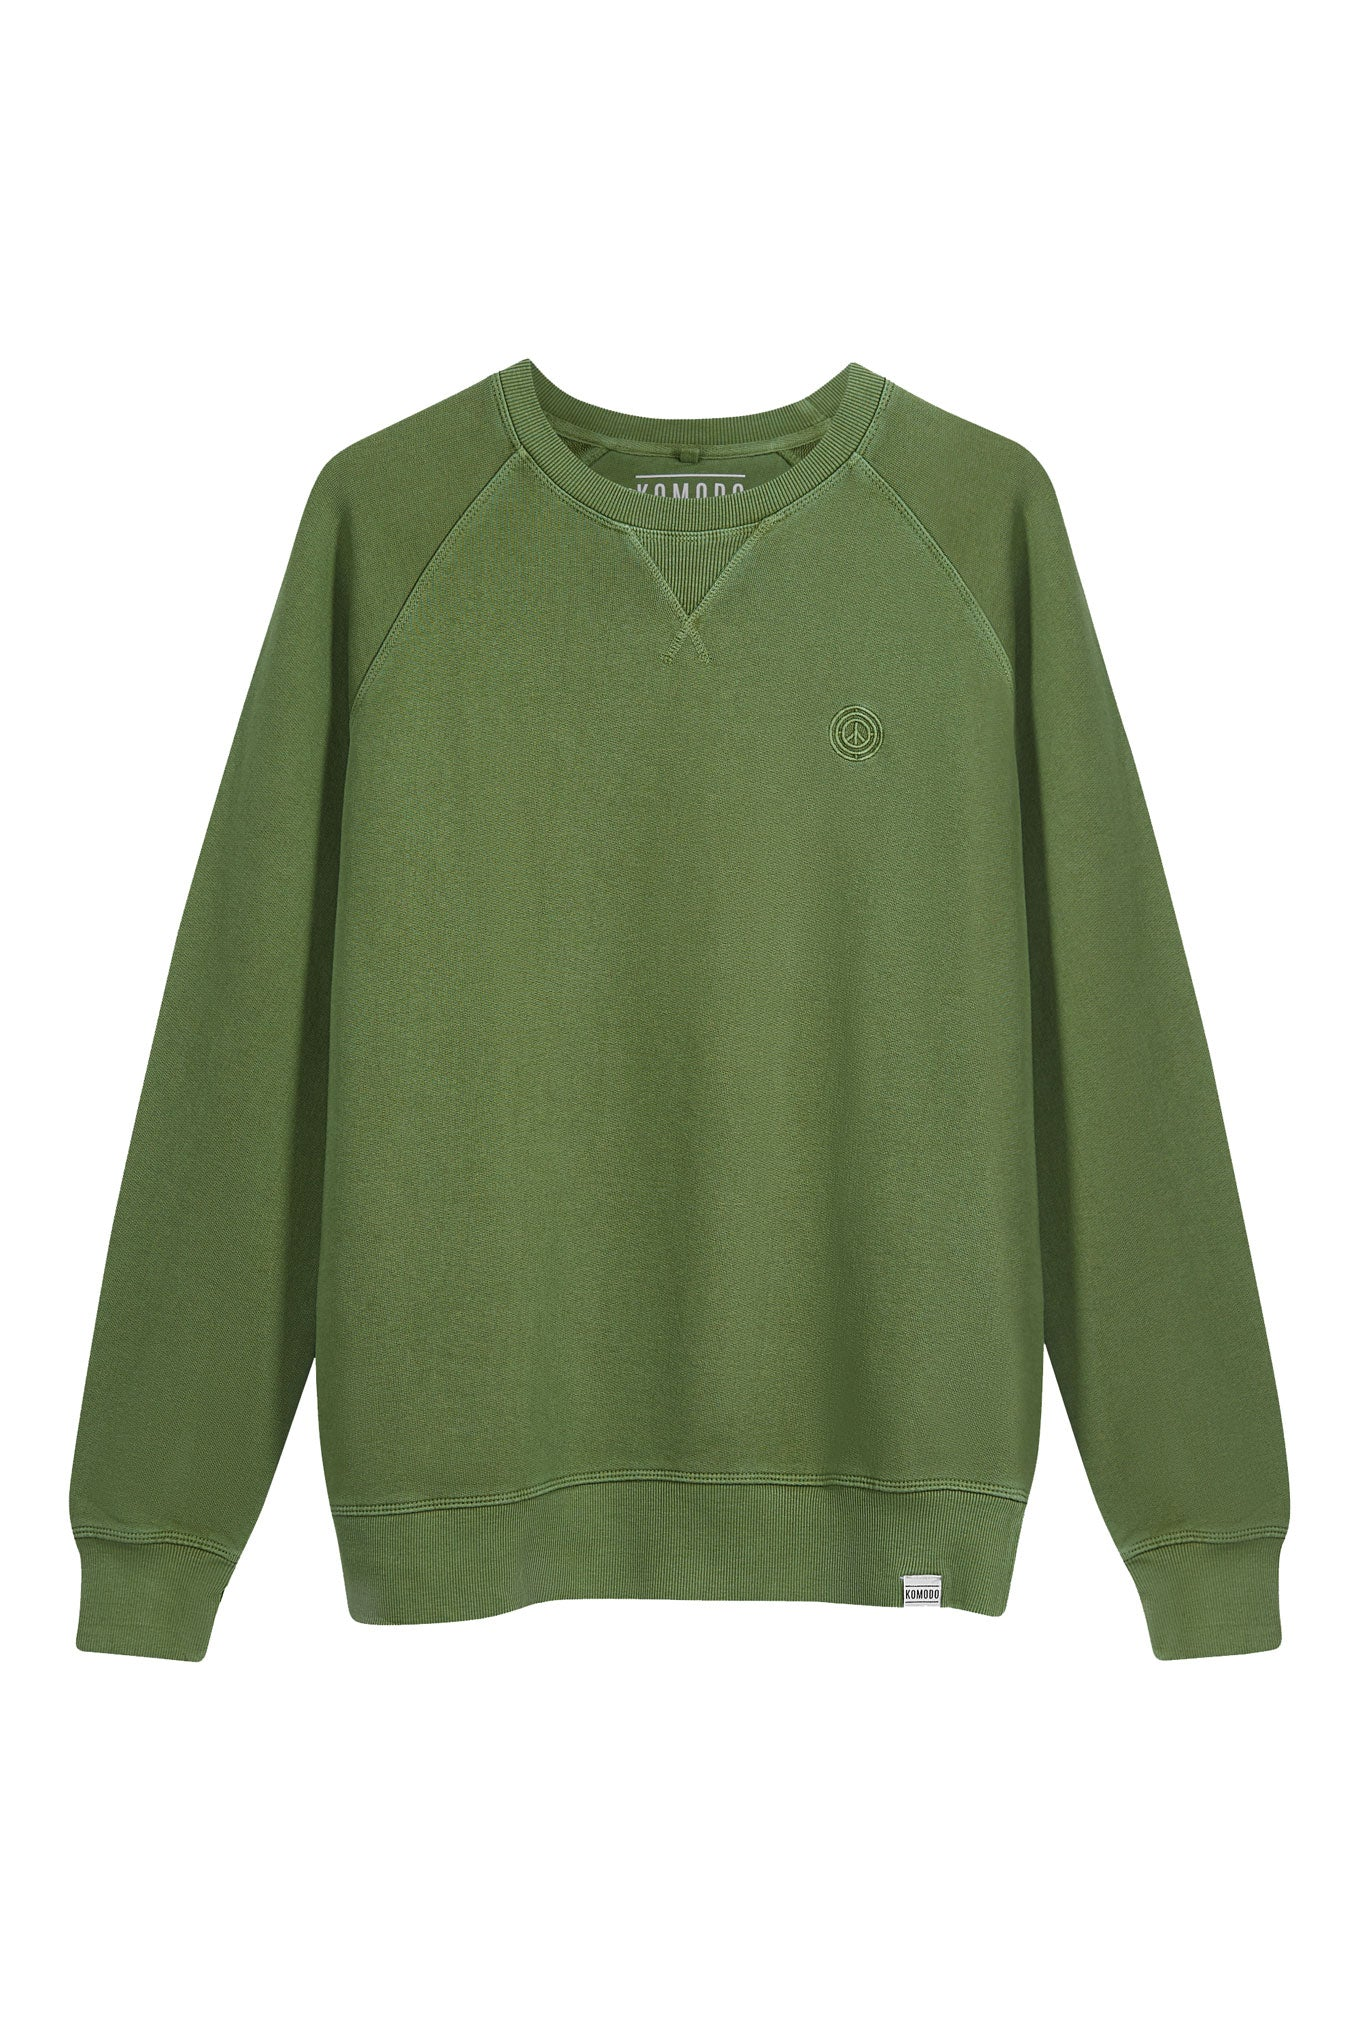 ANTON Womens Organic Cotton Crewneck Olive